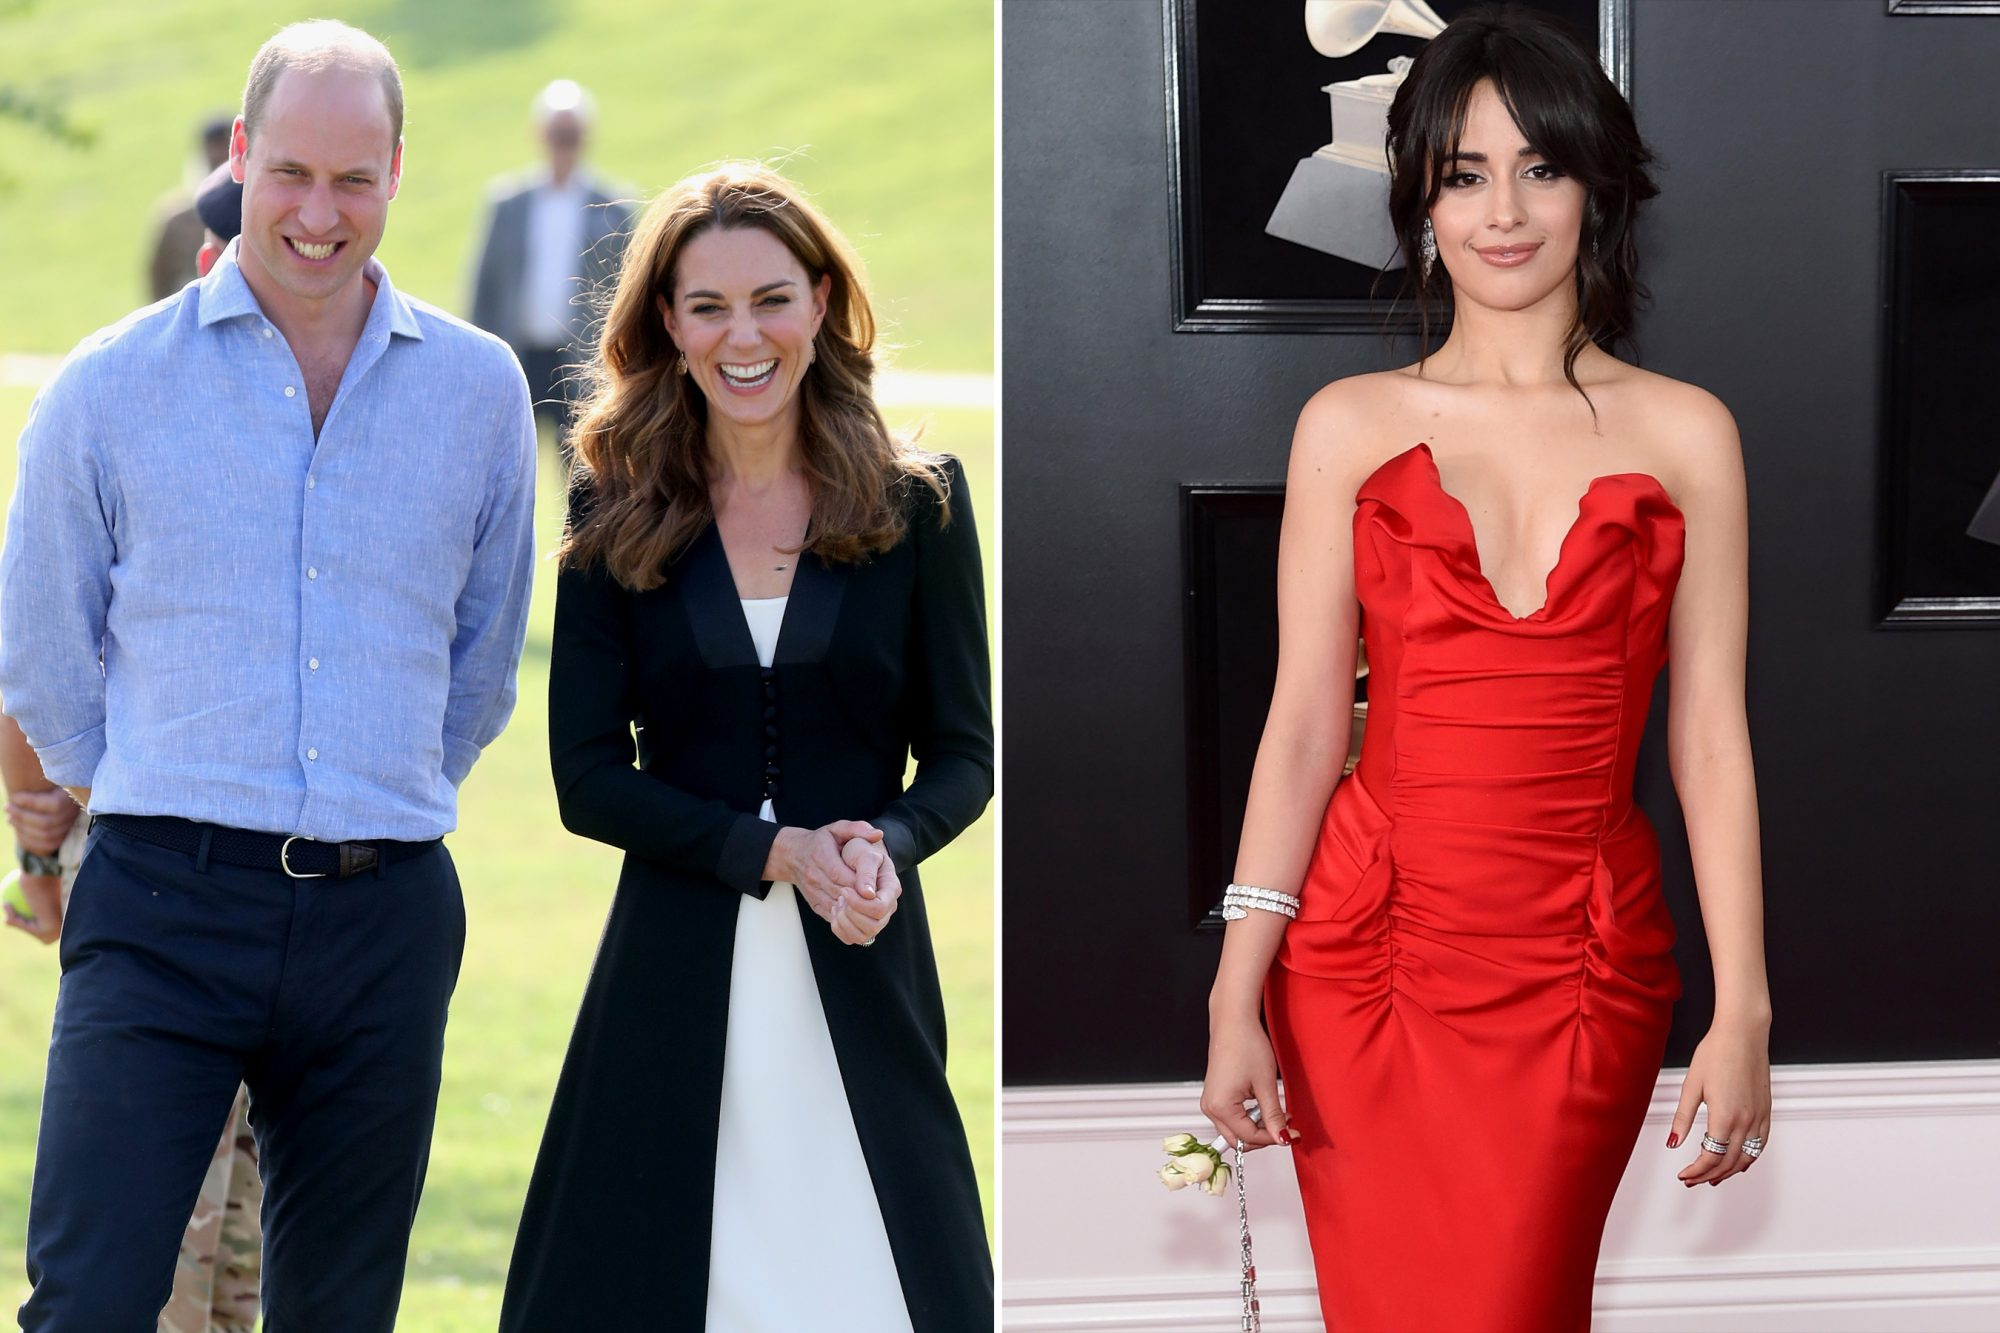 Catherine, Duchess of Cambridge, Prince William, Camilla Cabello